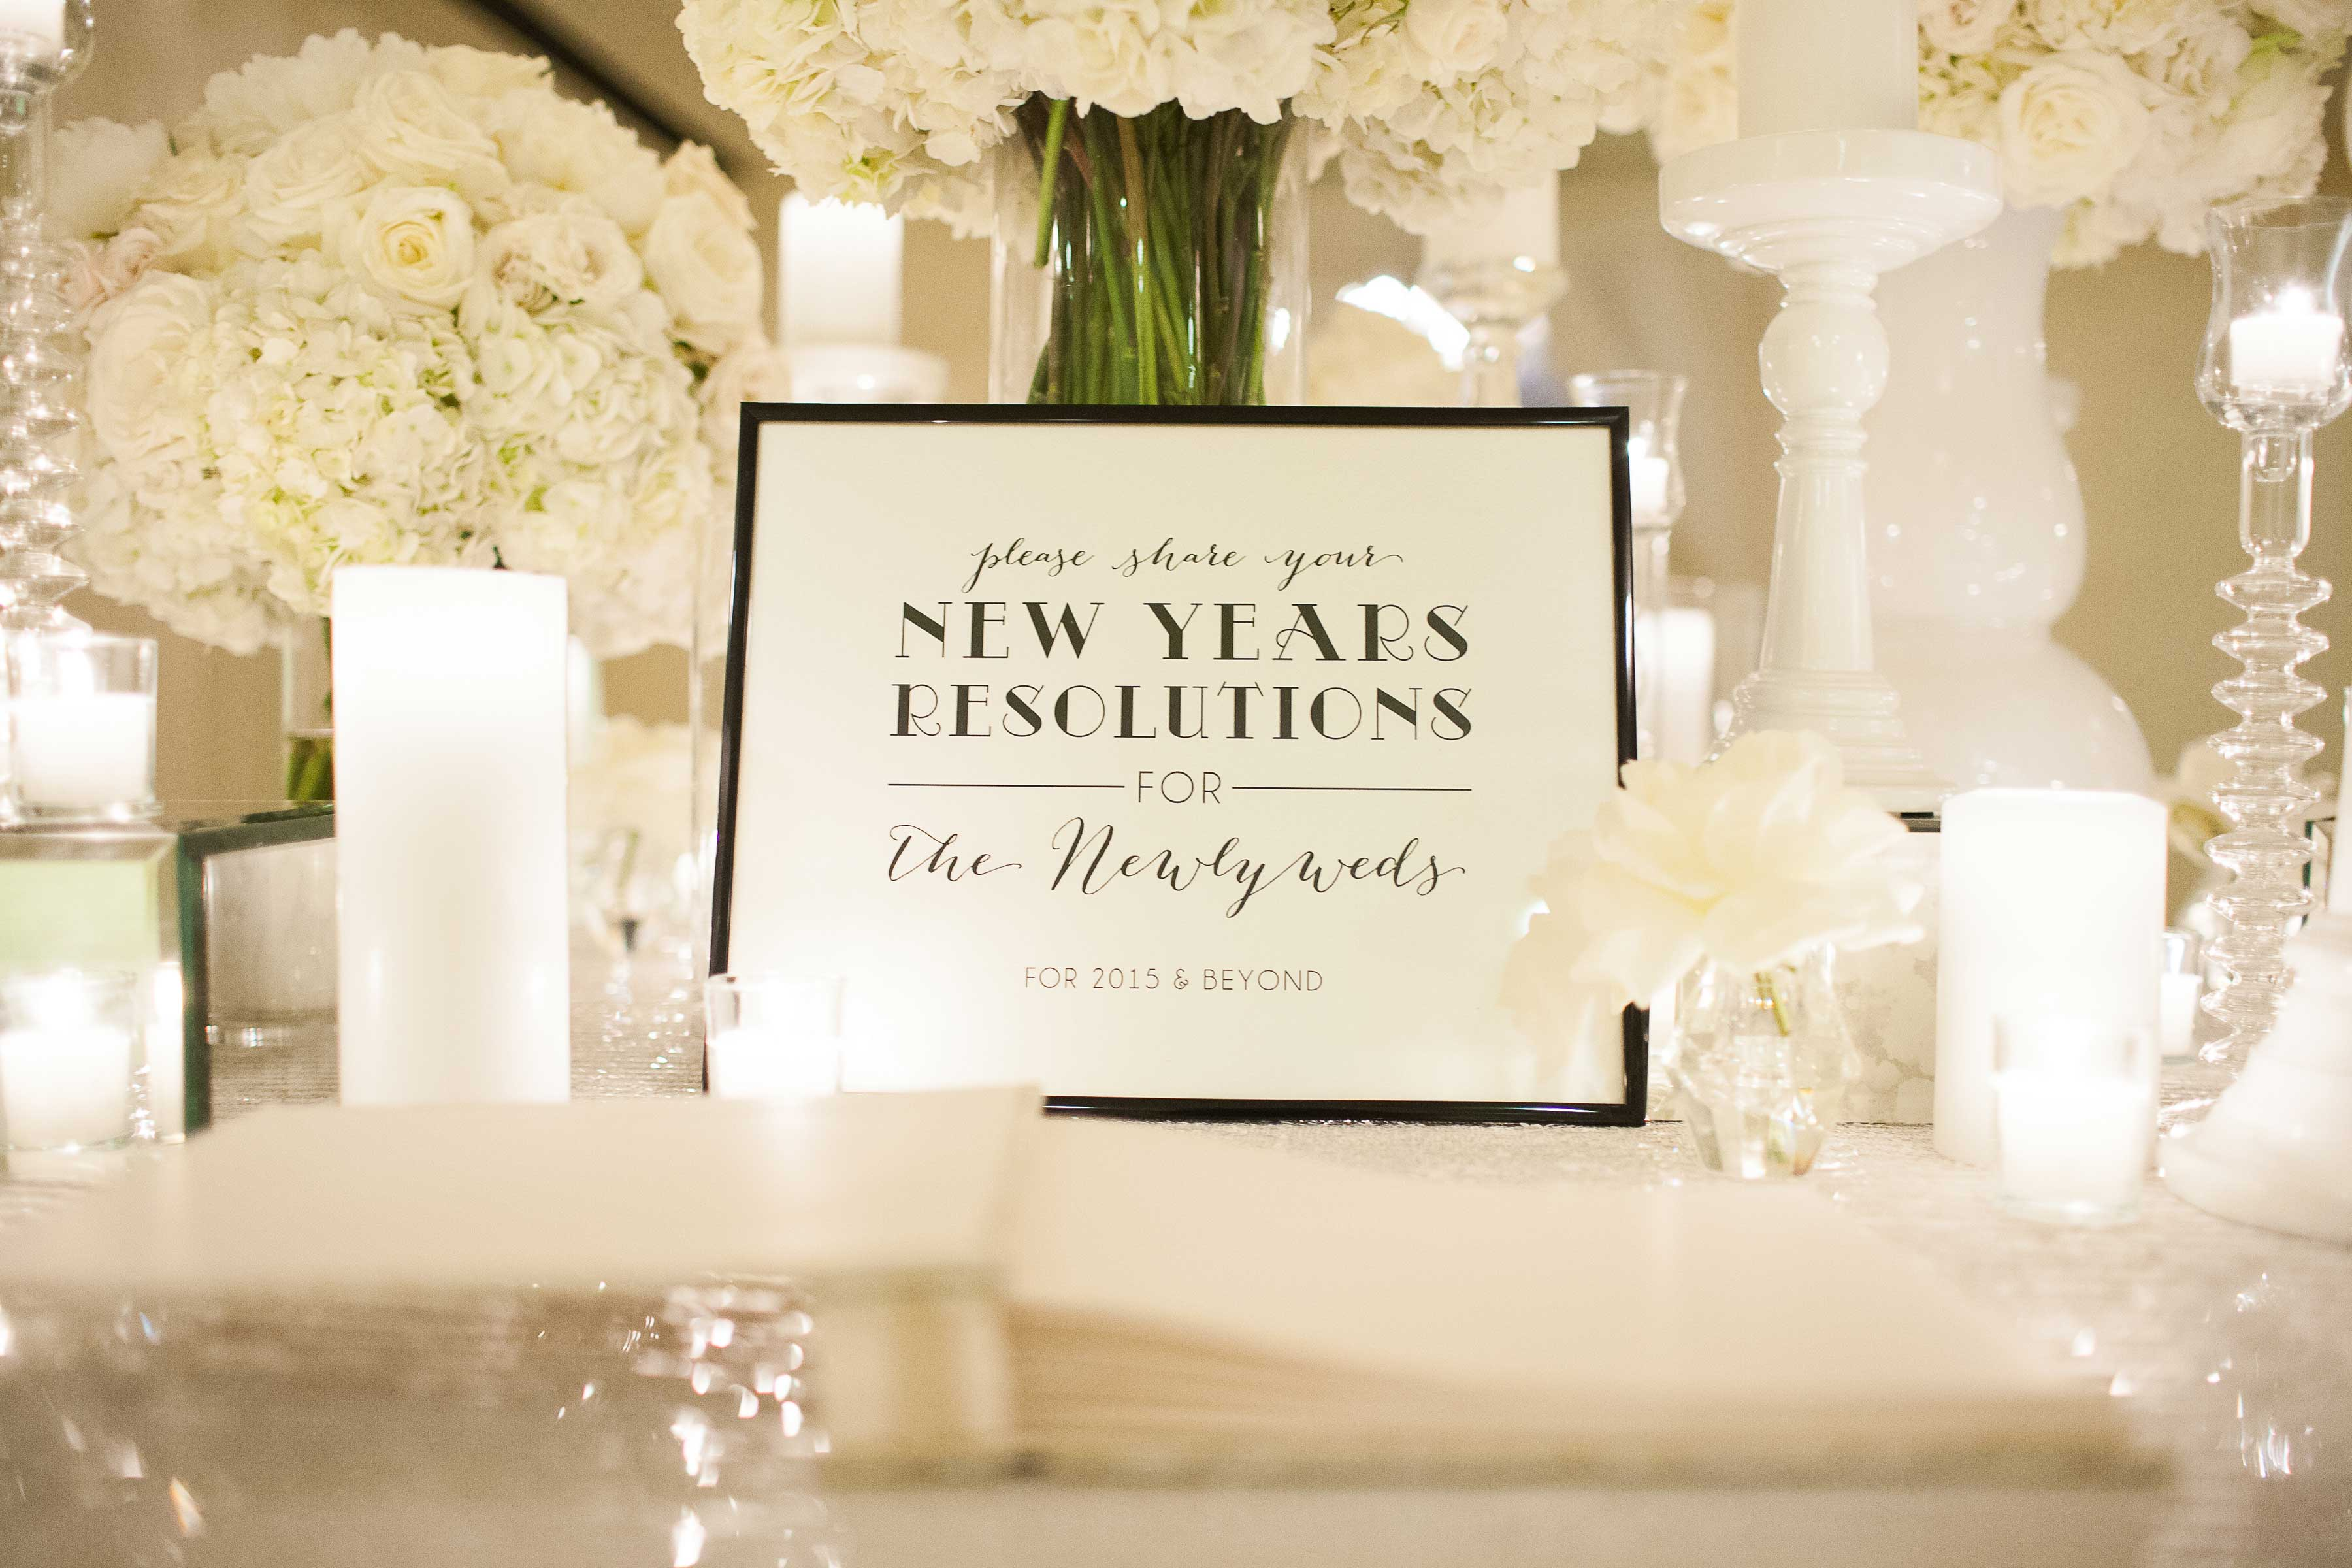 15 new years eve wedding ideas from real weddings inside weddings guest book alternative idea for new years eve wedding new years resolutions for bride and groom junglespirit Choice Image